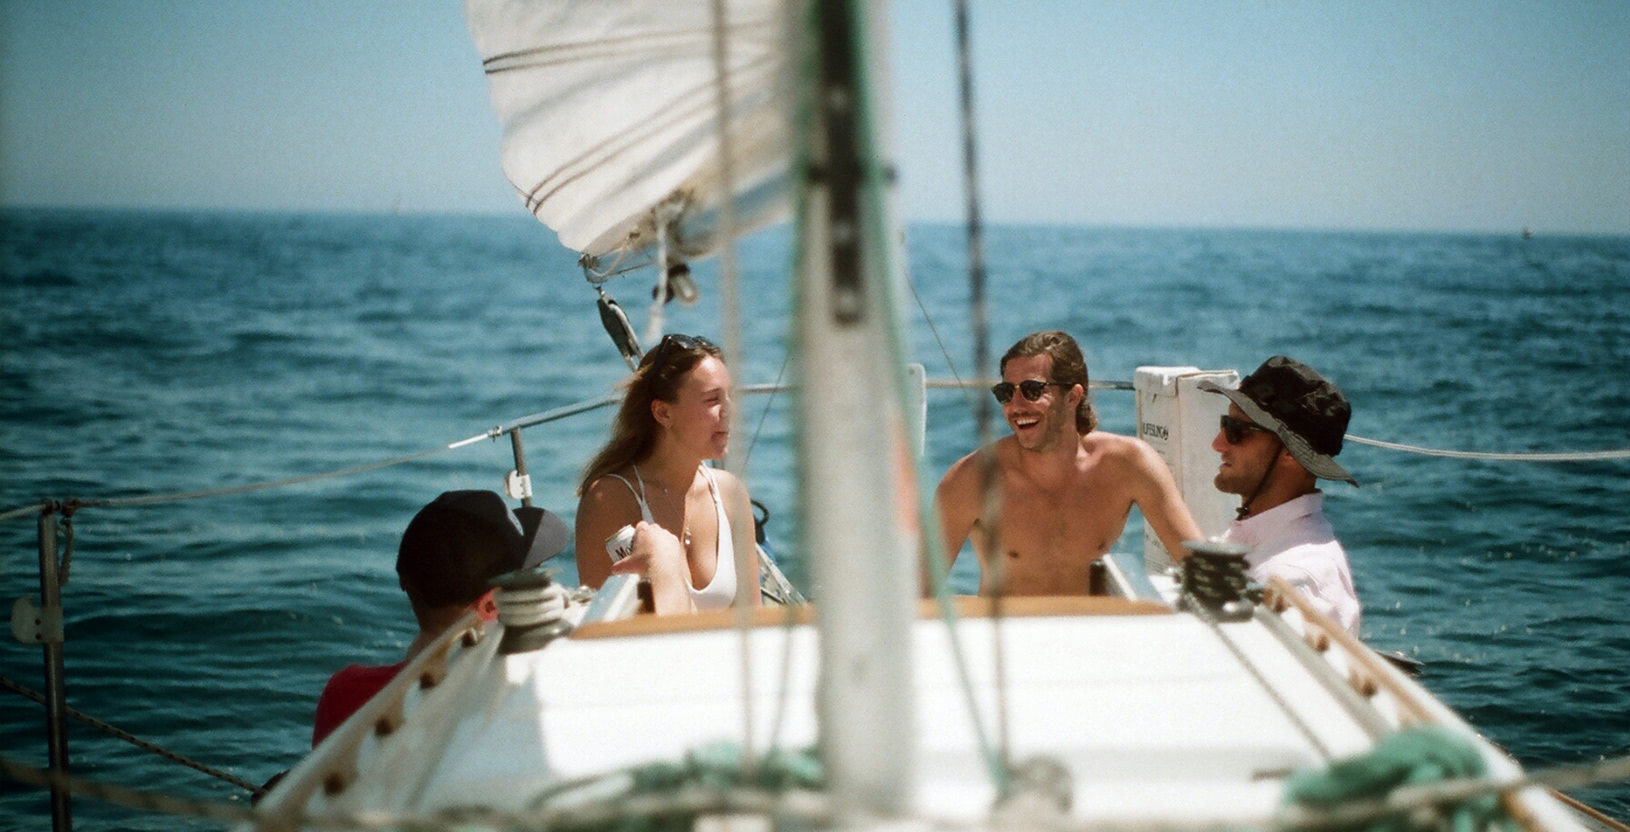 Four people sitting on a sailboat